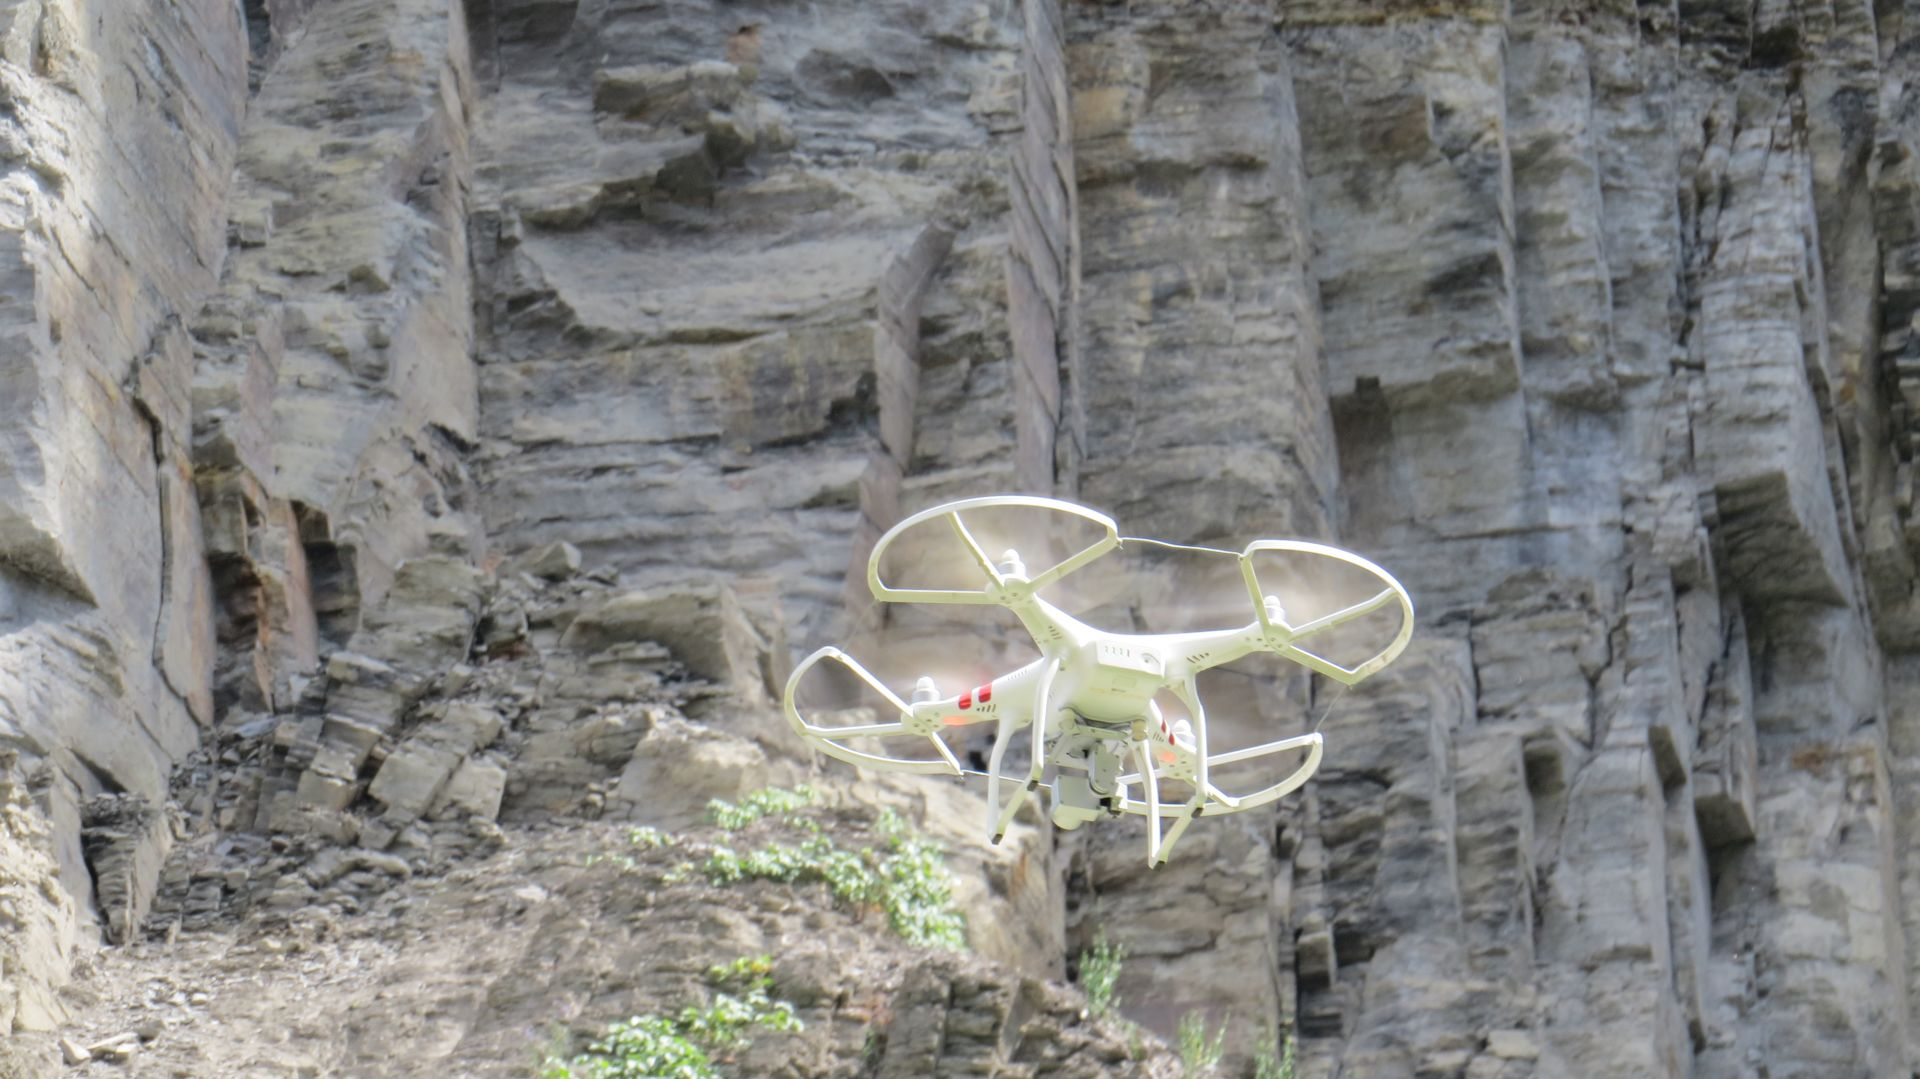 Drone use in real estate will soon take off